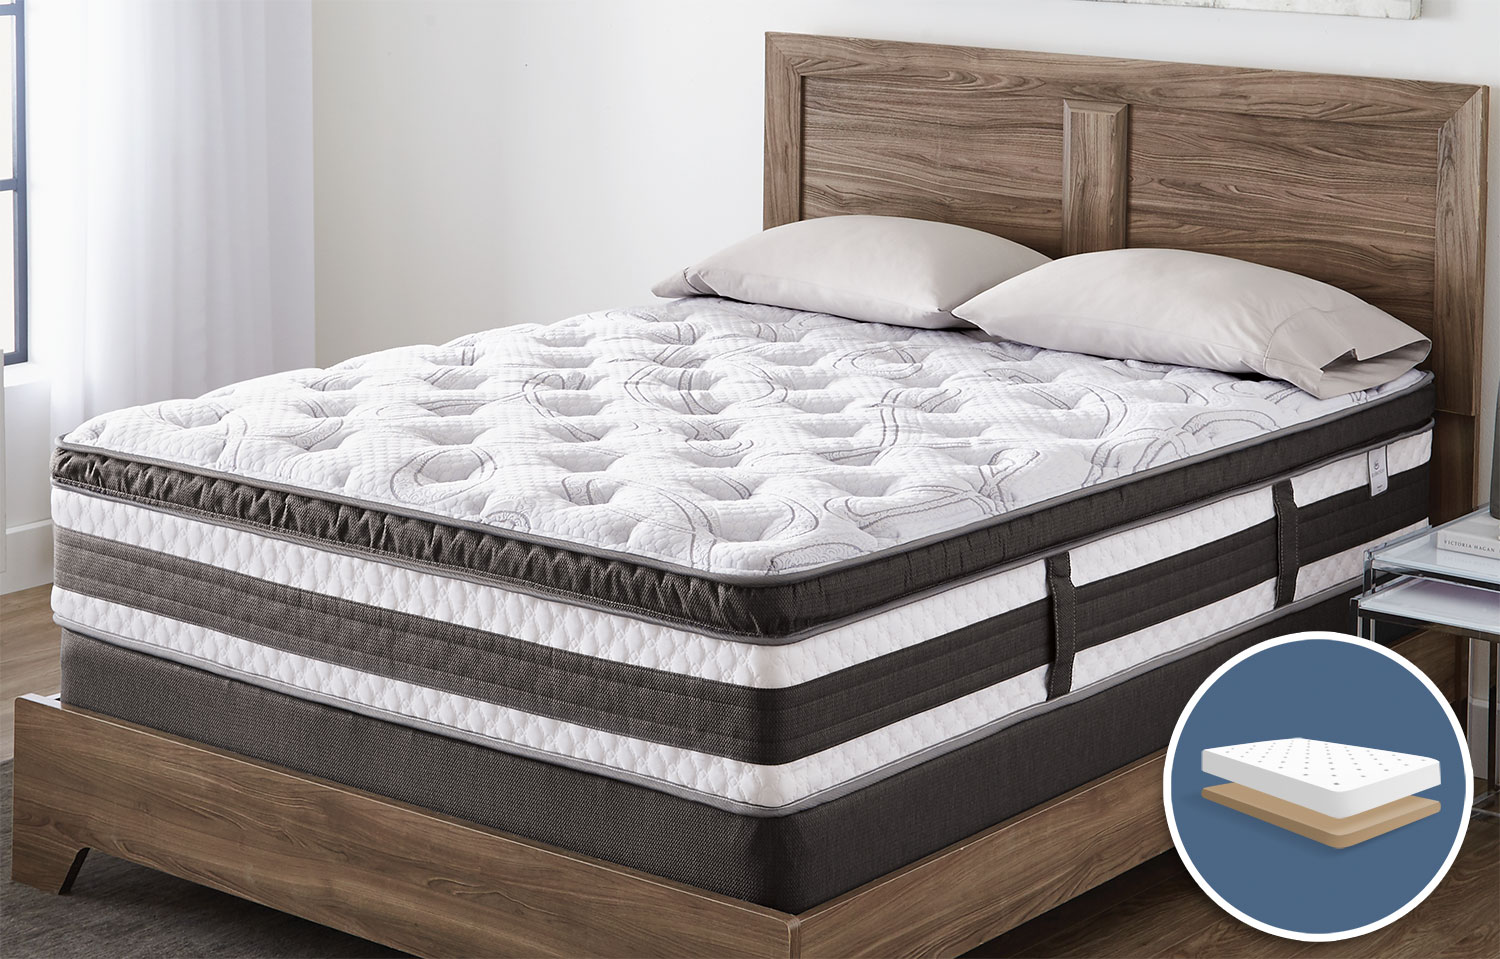 Mattresses and Bedding - Serta iCollection™ Kingsport Euro-Top Luxury Firm Low-Profile King Mattress Set